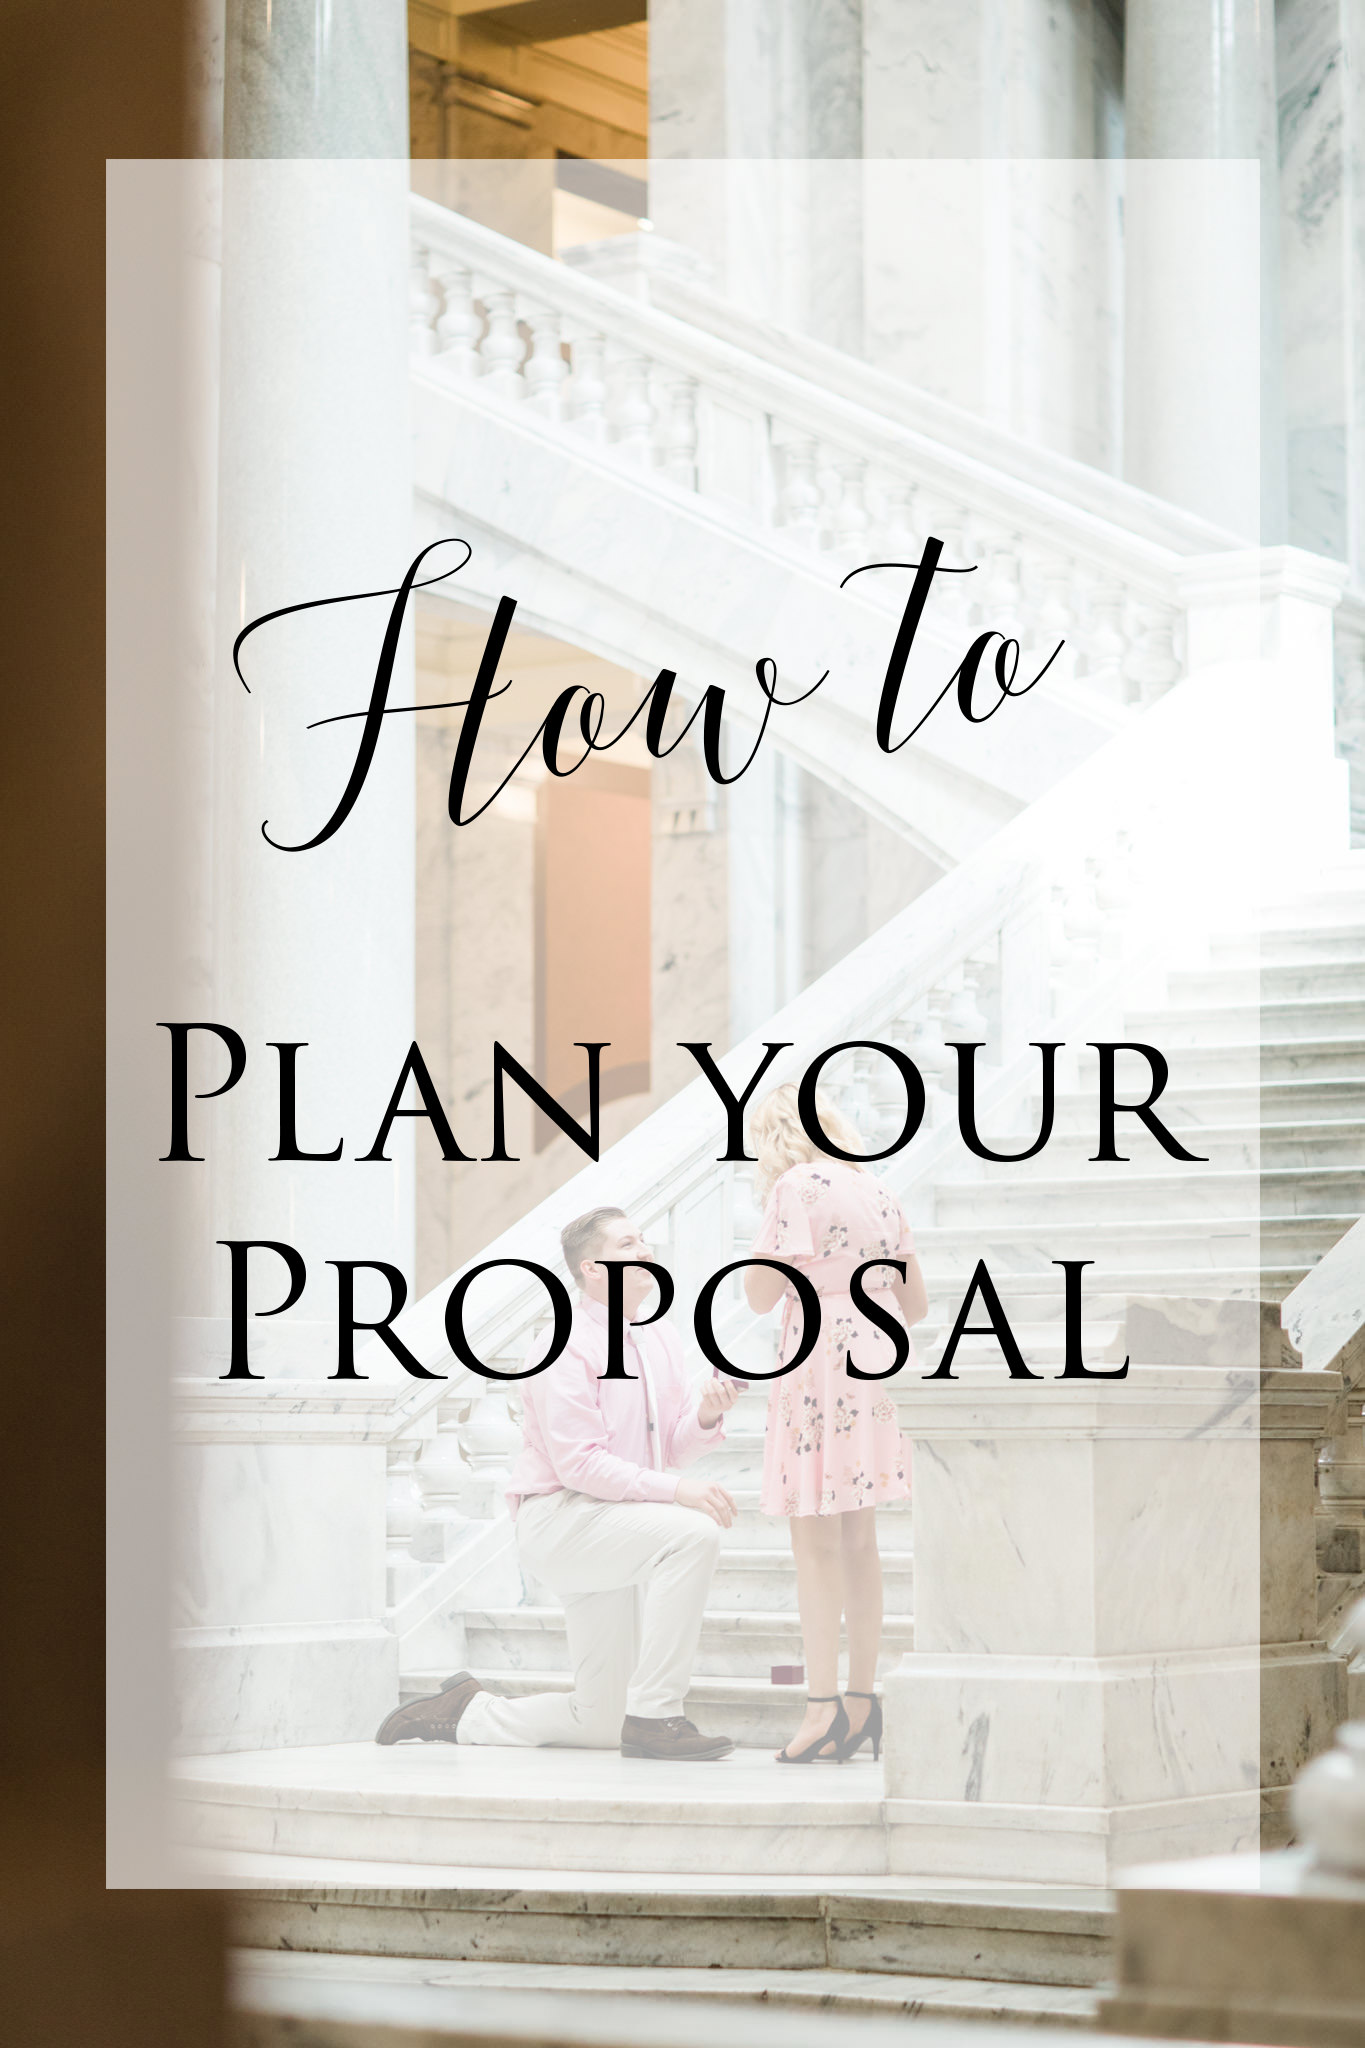 How To Pop the Question - Take a look at some of our top tips for planning the ultimate marriage proposal below to get you started on popping the question...read more